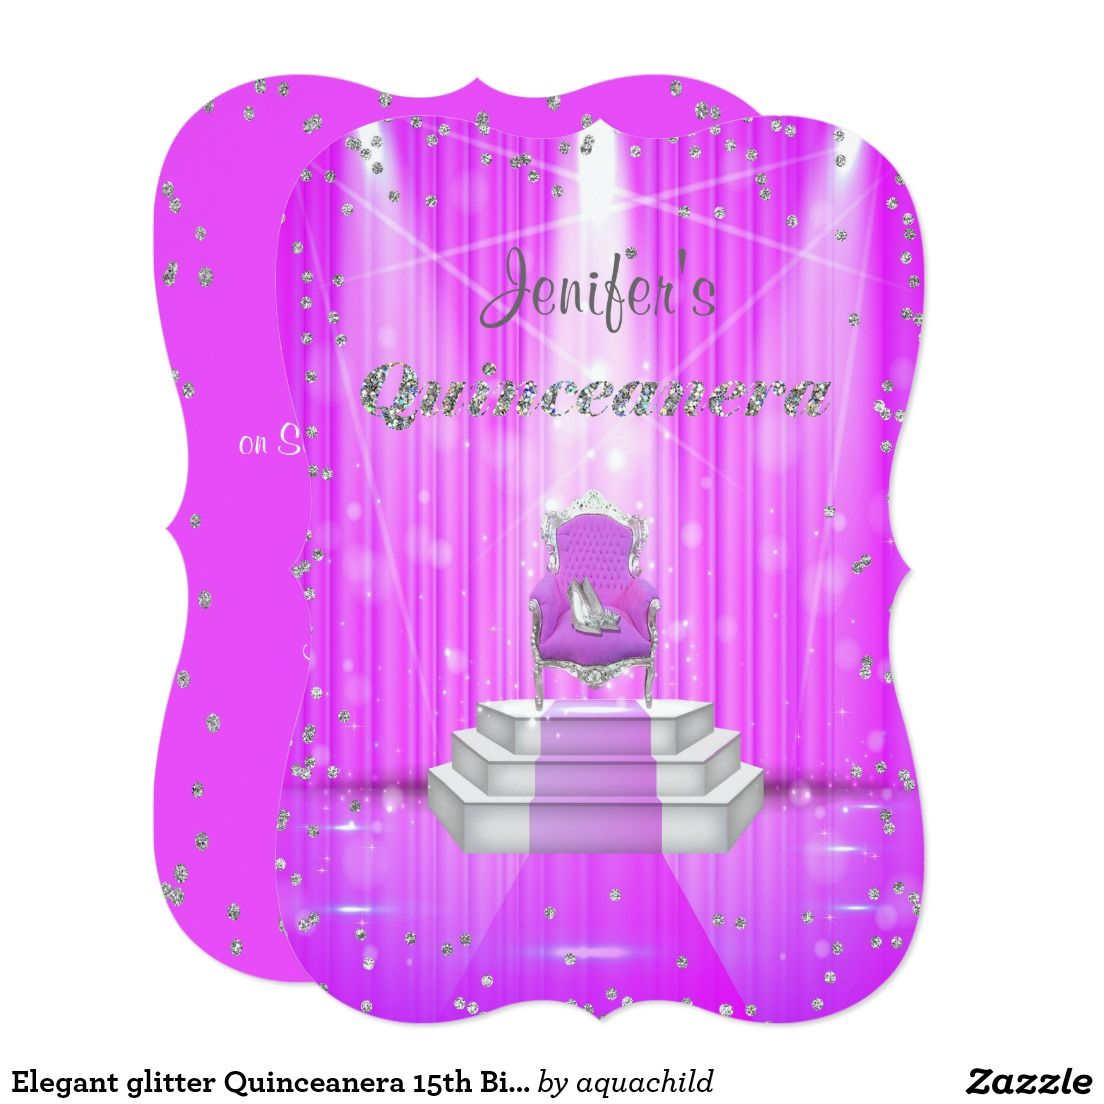 Elegant glitter quinceanera 15th birthday card customized elegant glitter quinceanera 15th birthday card m4hsunfo Image collections